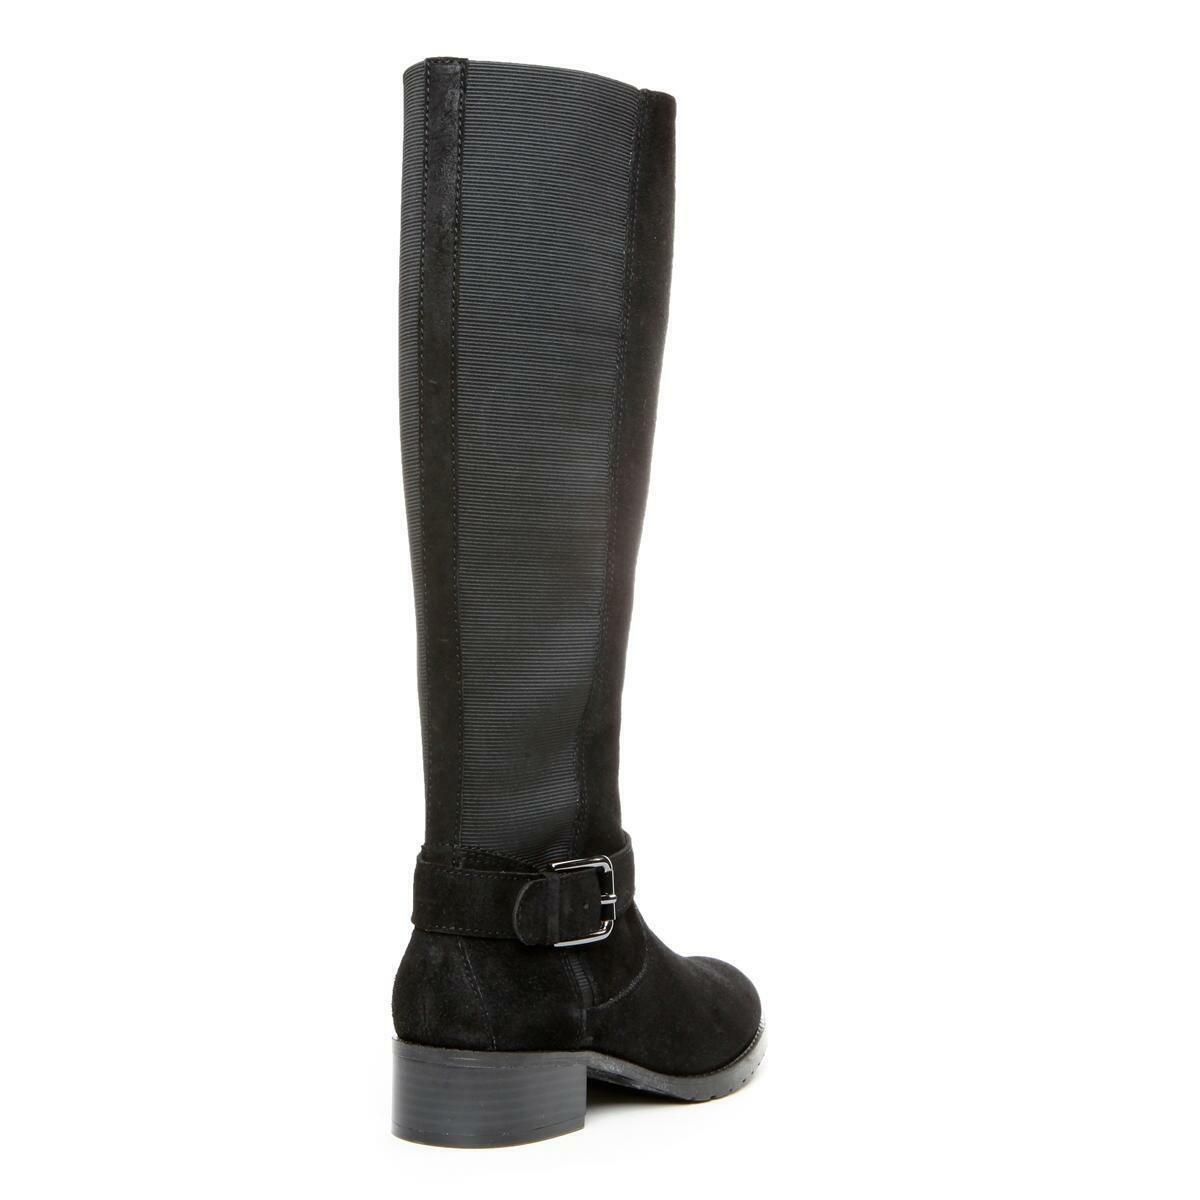 Donald J Pliner Beso Suede Suede Suede Riding Boot Knee-High Tall Black 6 New  328 03b3a8